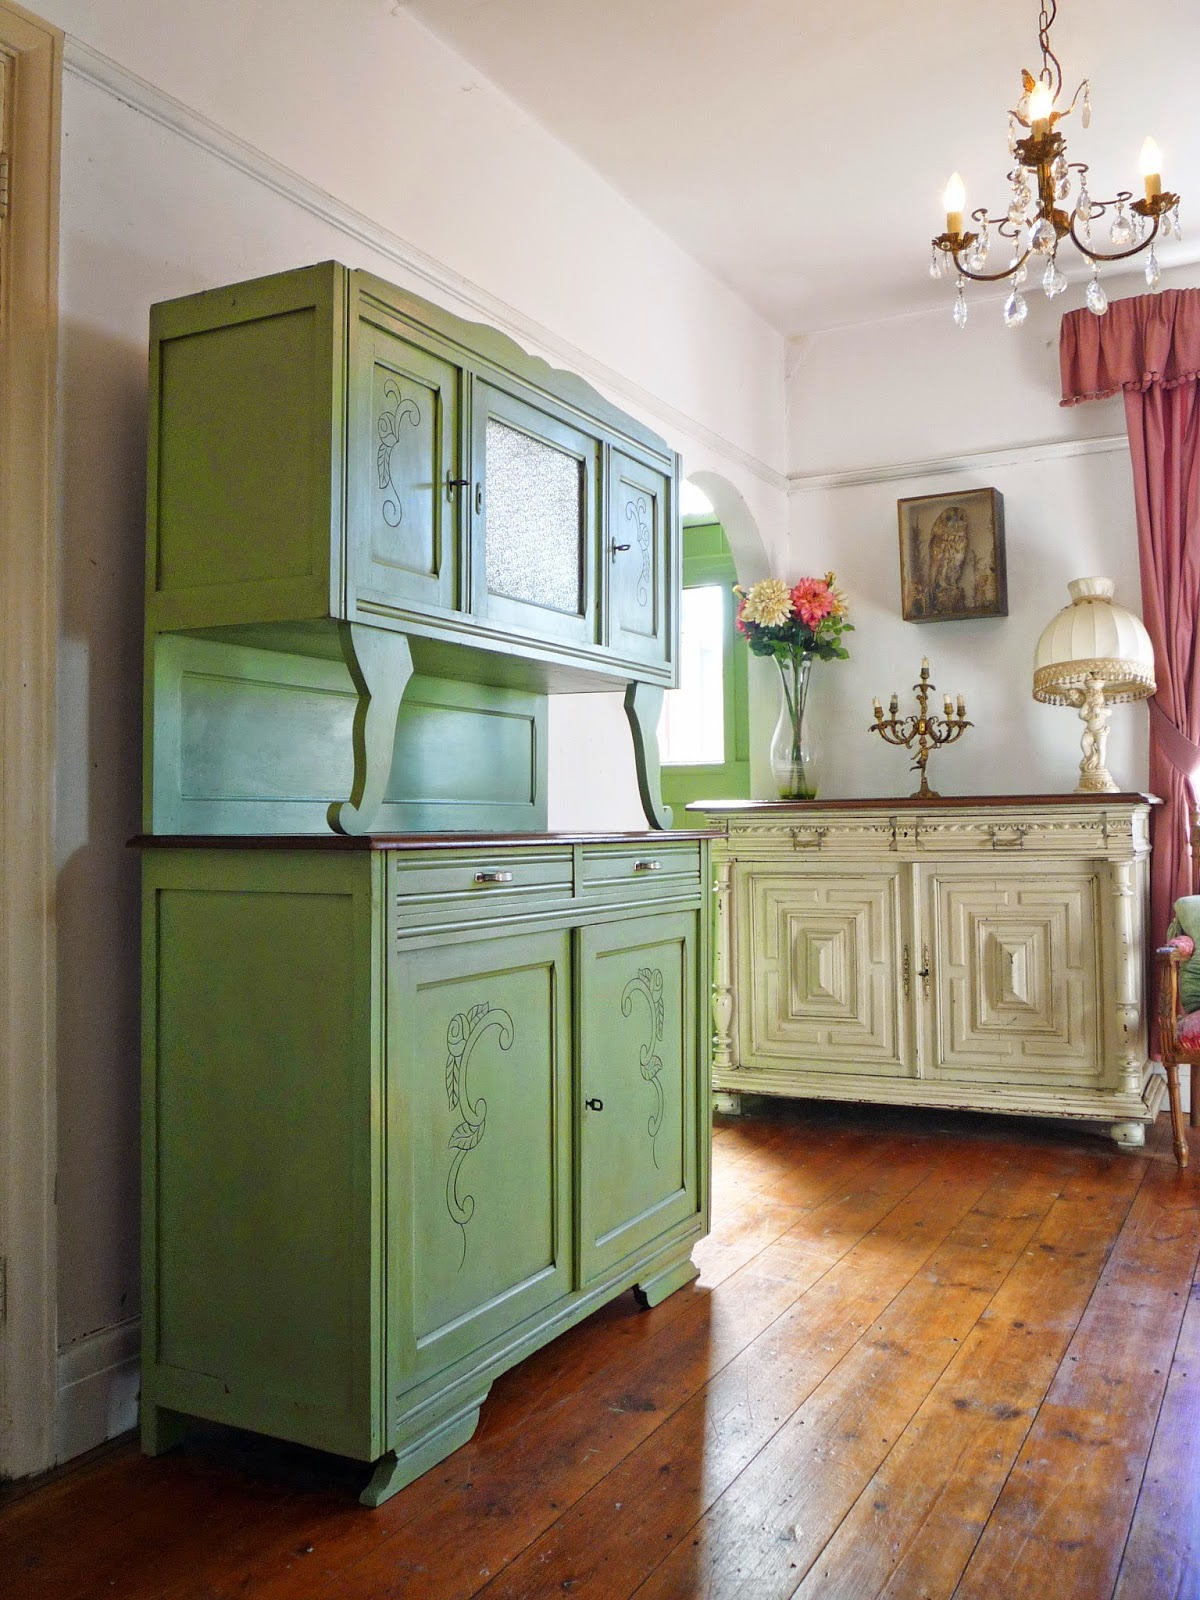 kitchen tv gel general armoire color pin a into finishes stain repurposed pantry is